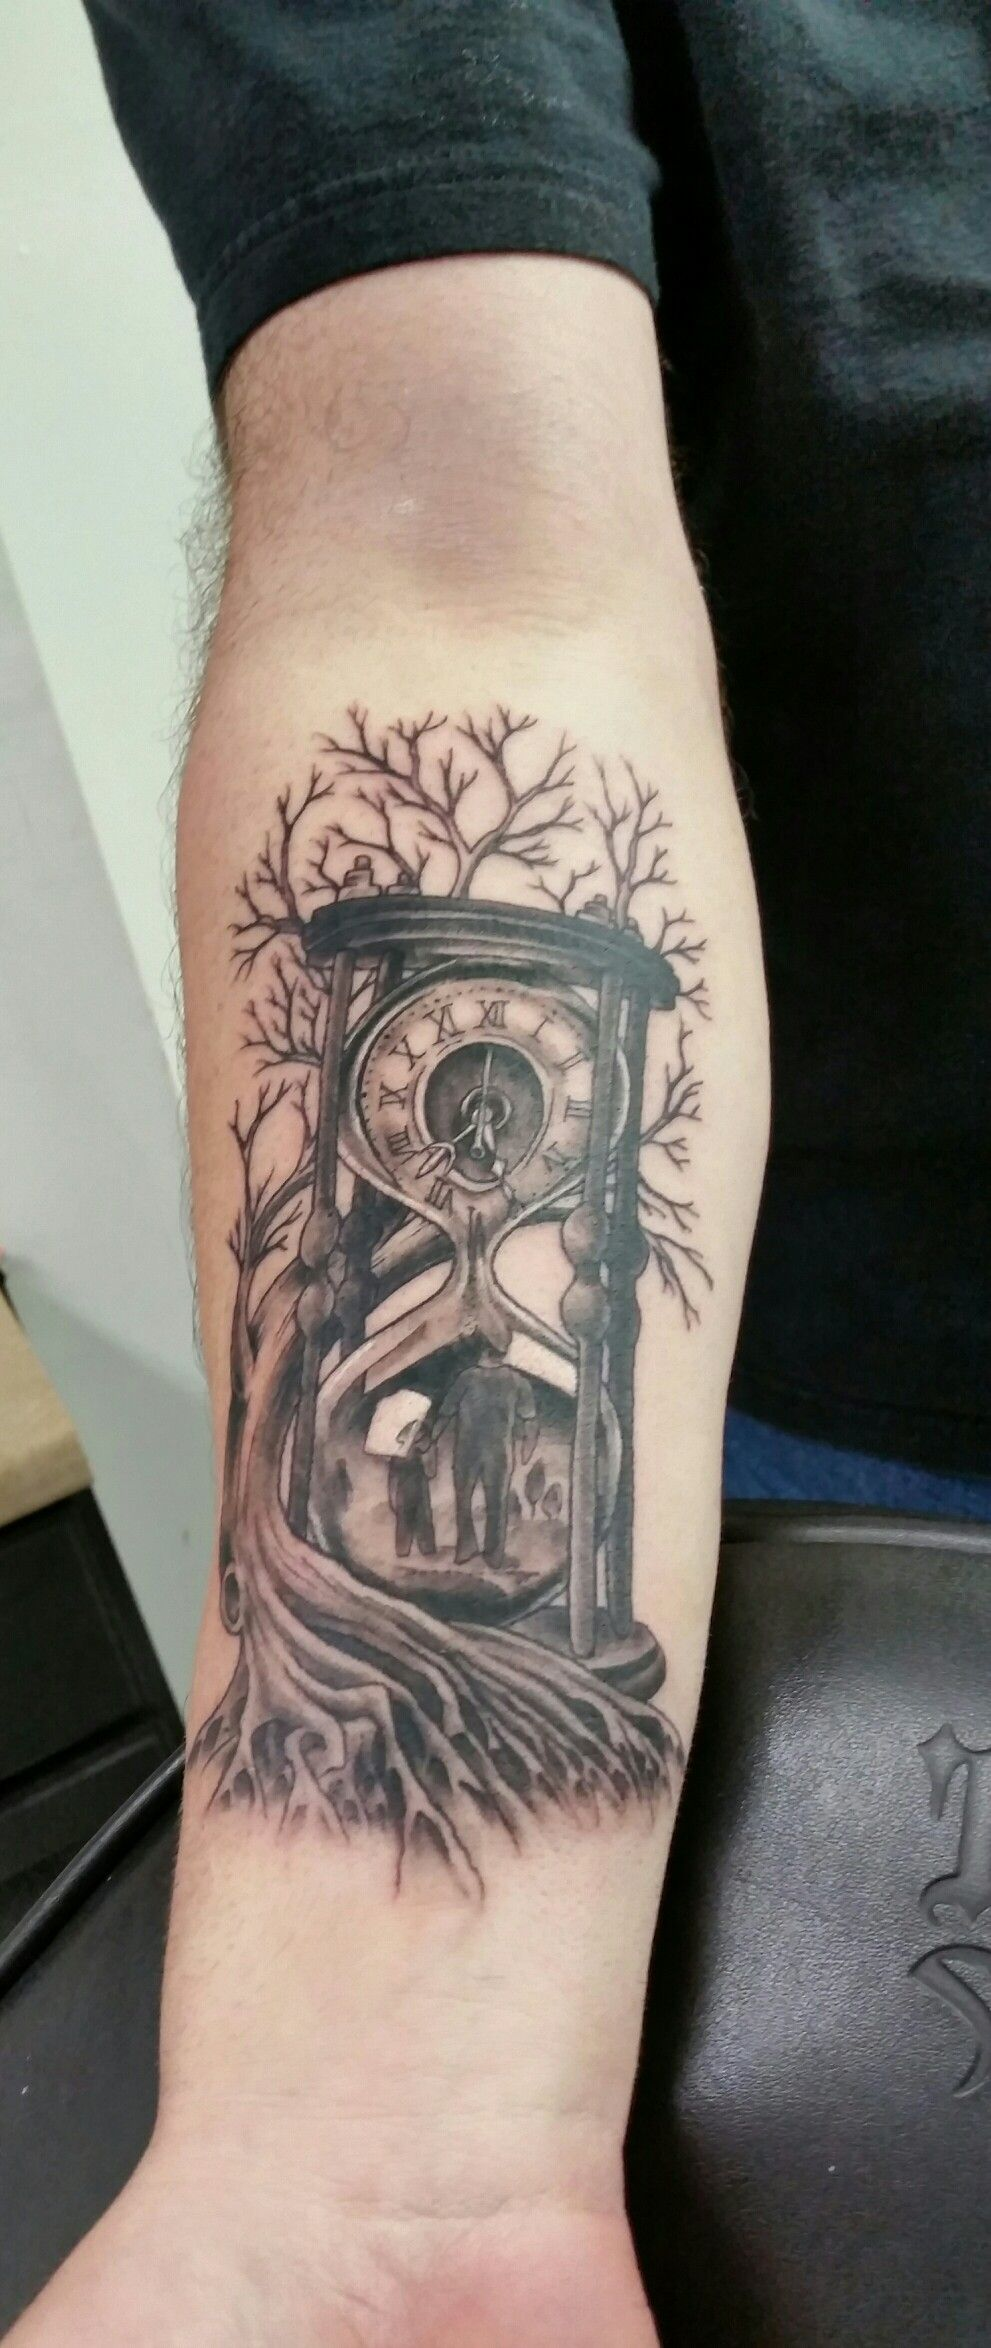 Time Family Father And Son Hour Glass Tree Roots Tattoo